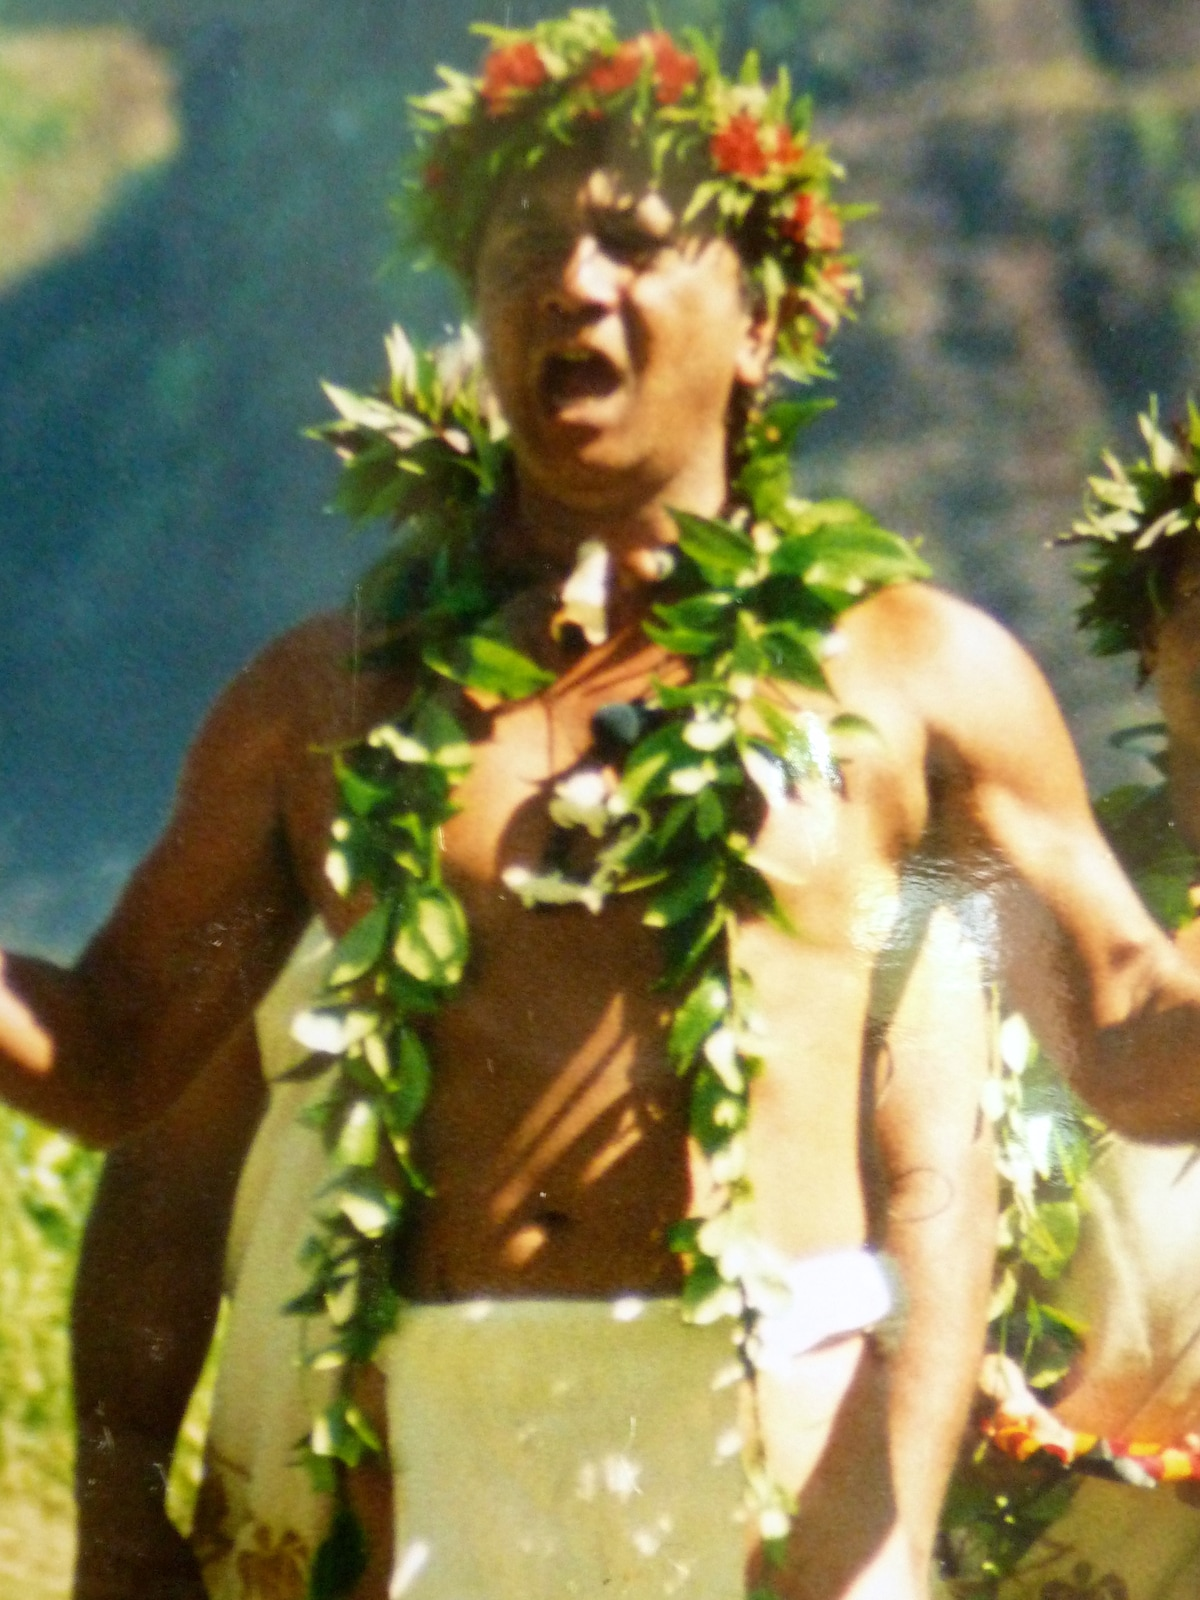 Don from Hāna